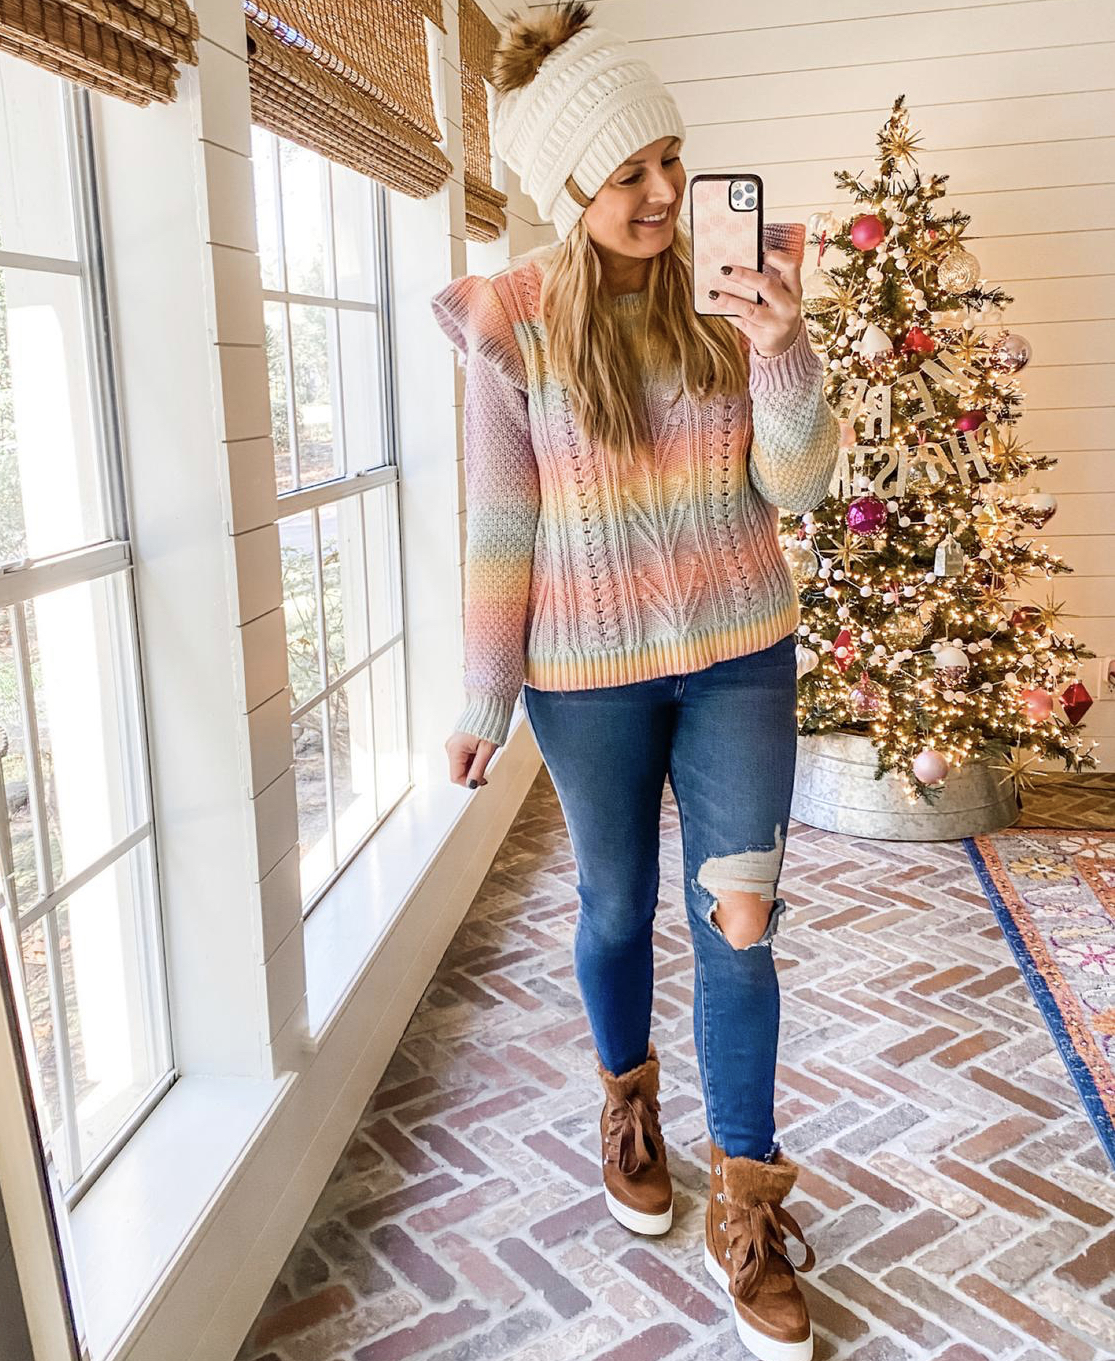 December Outfits by popular Houston fashion blog, Fancy Ashley: image of a woman standing in front of a Christmas tree decorated with pink, white and silver ornaments and wearing a multi color stripe knit sweater, cream fur pom beanie, distress denim, and brown fur lined hight tops sneakers.